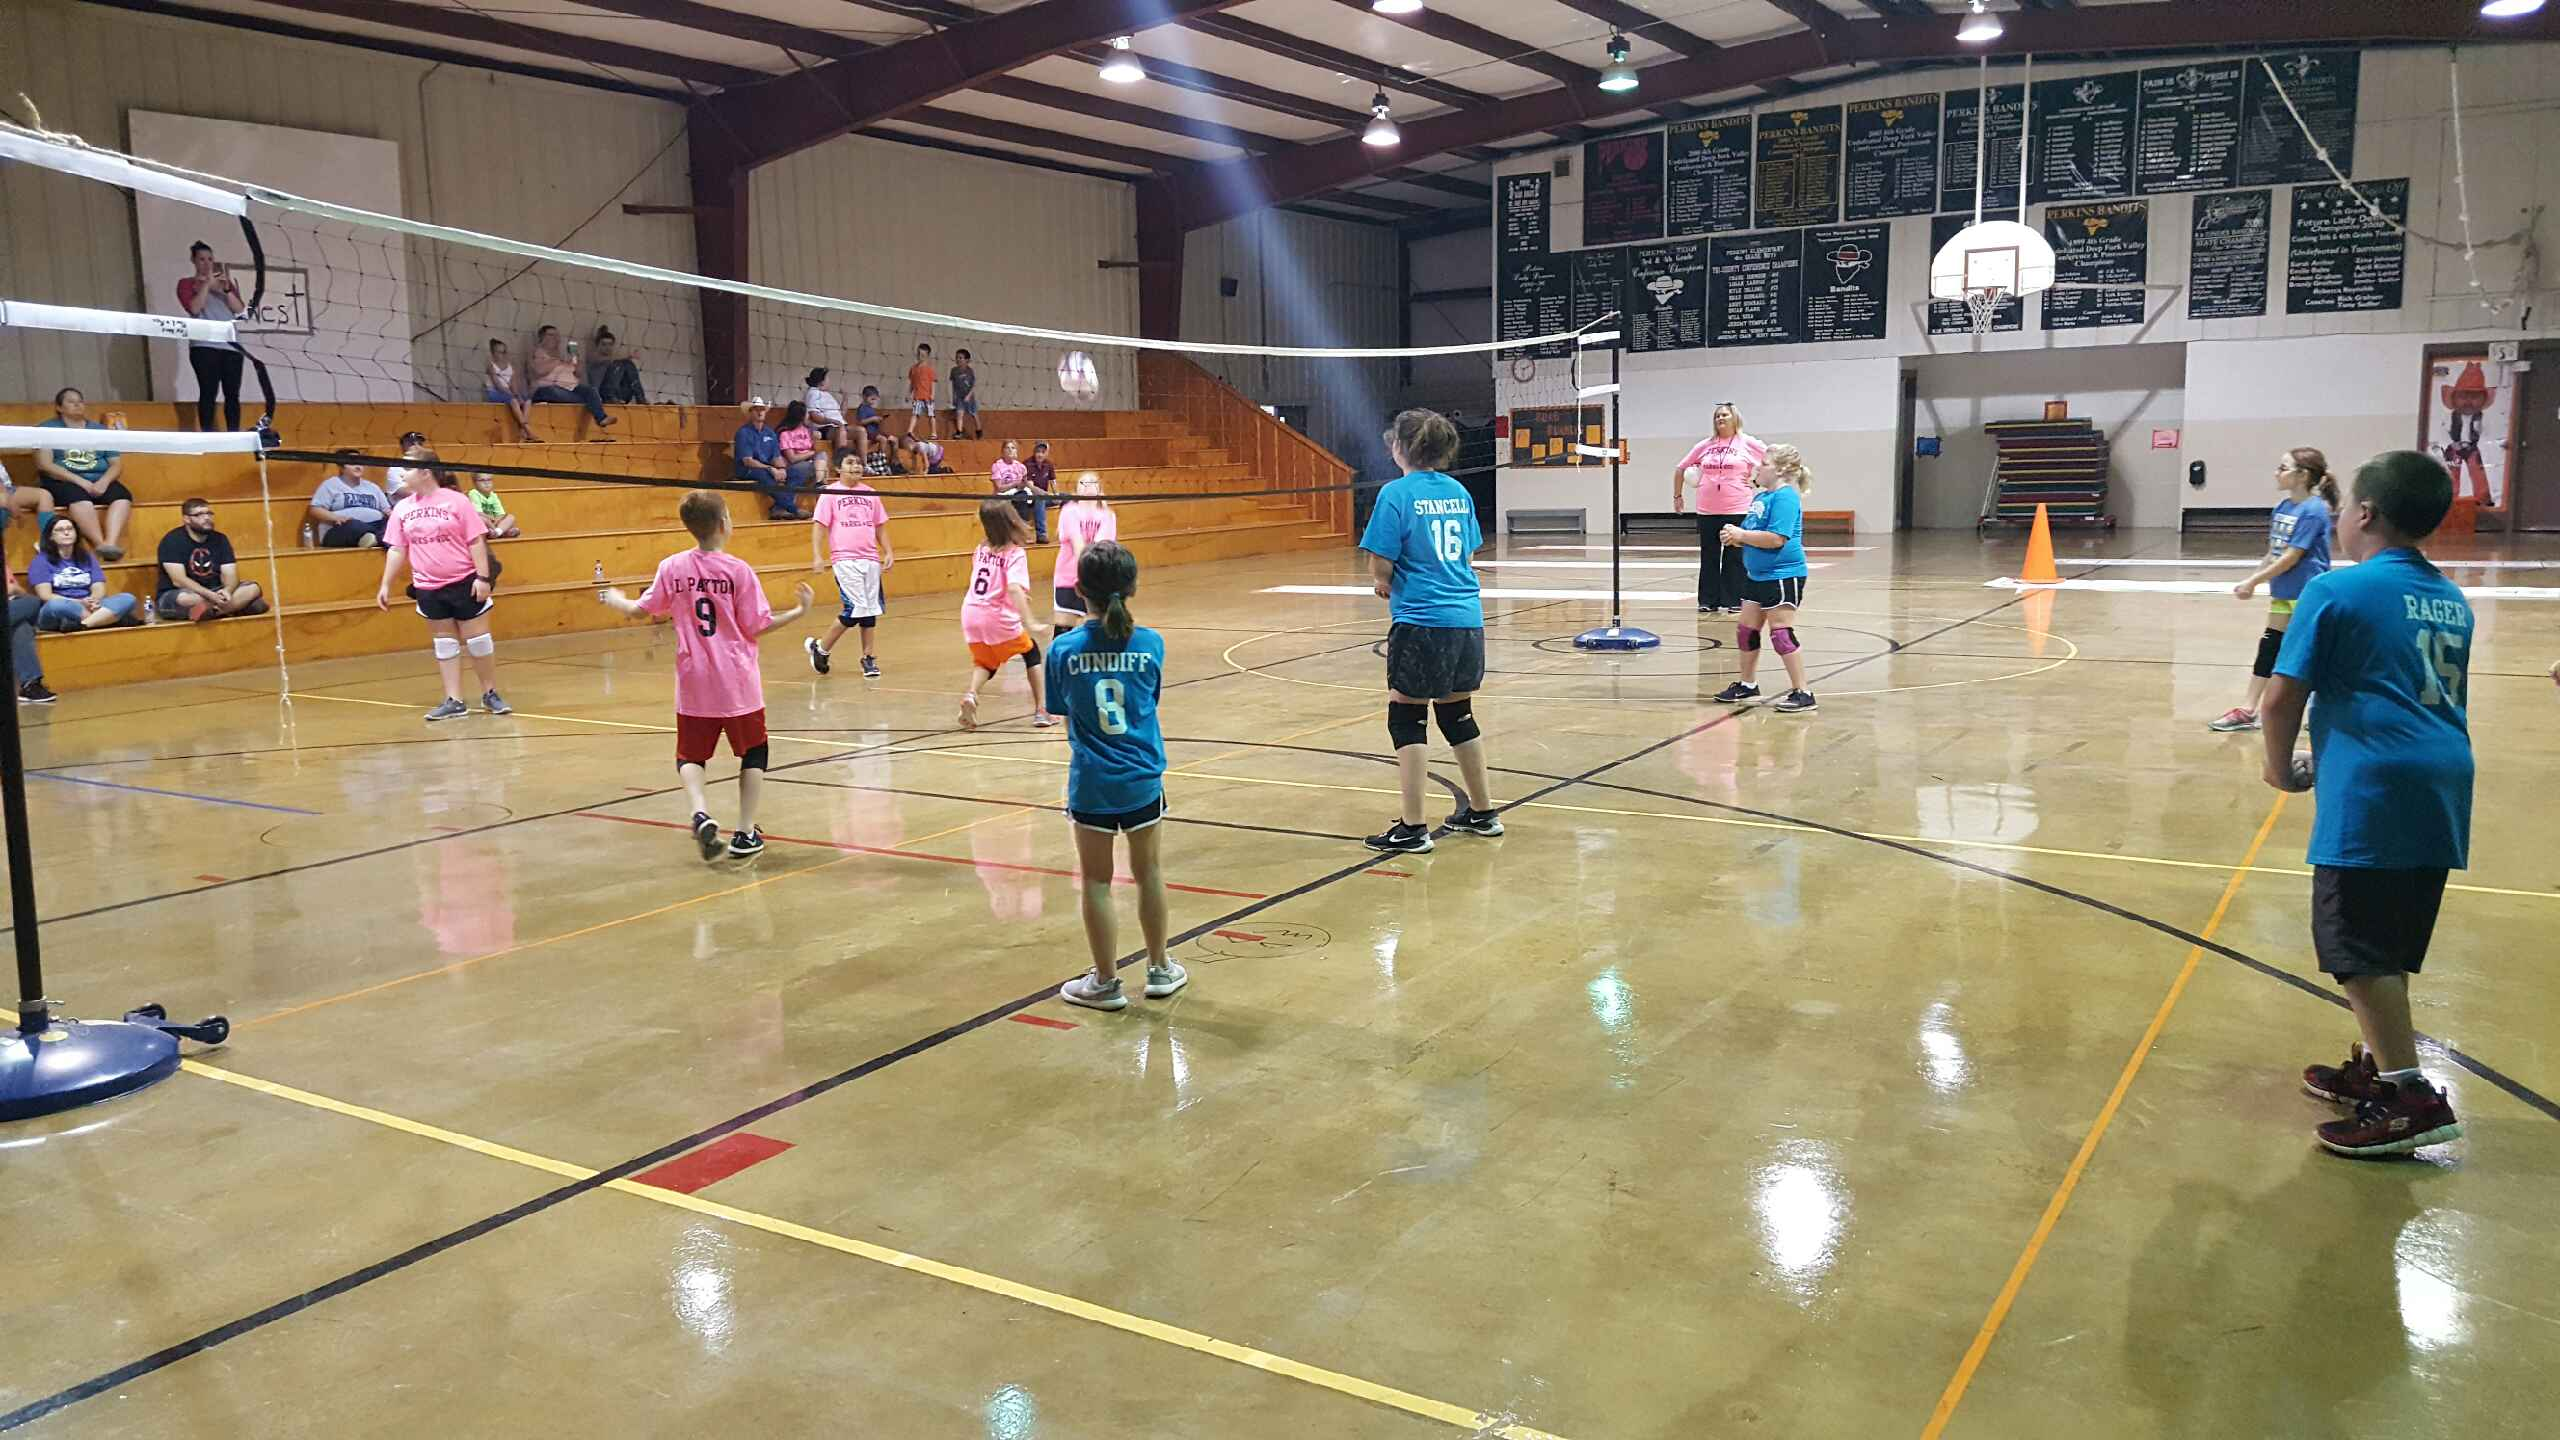 perkins park and rec volleyball.jpg